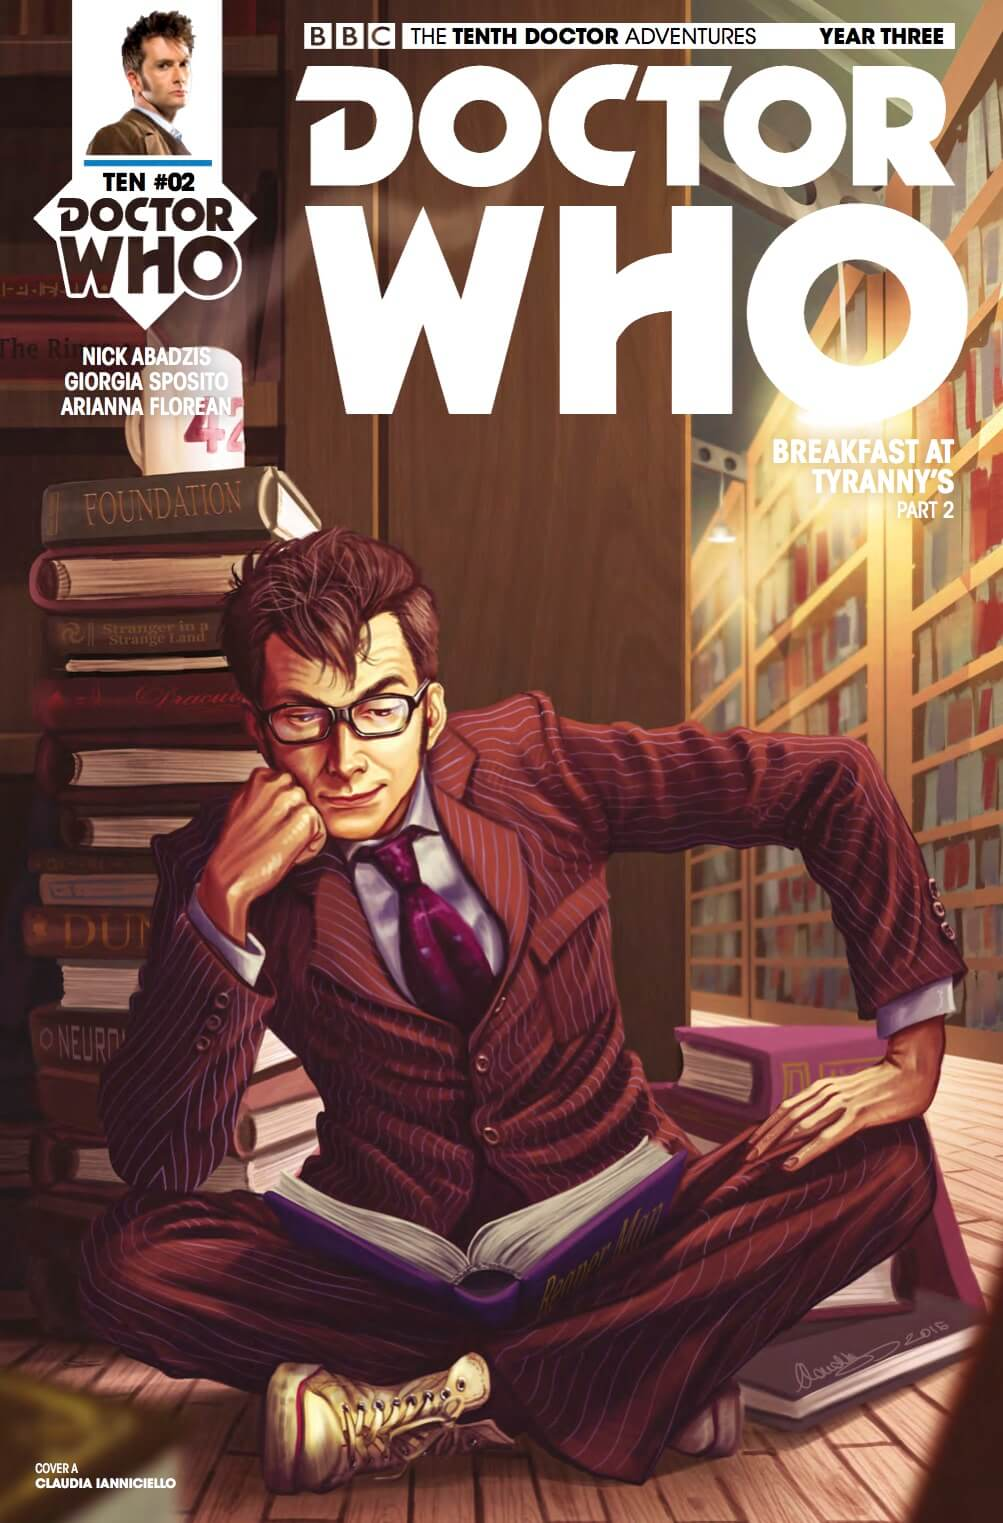 Doctor Who: The Tenth Doctor #3.2 Review: Dreams to Nightmares